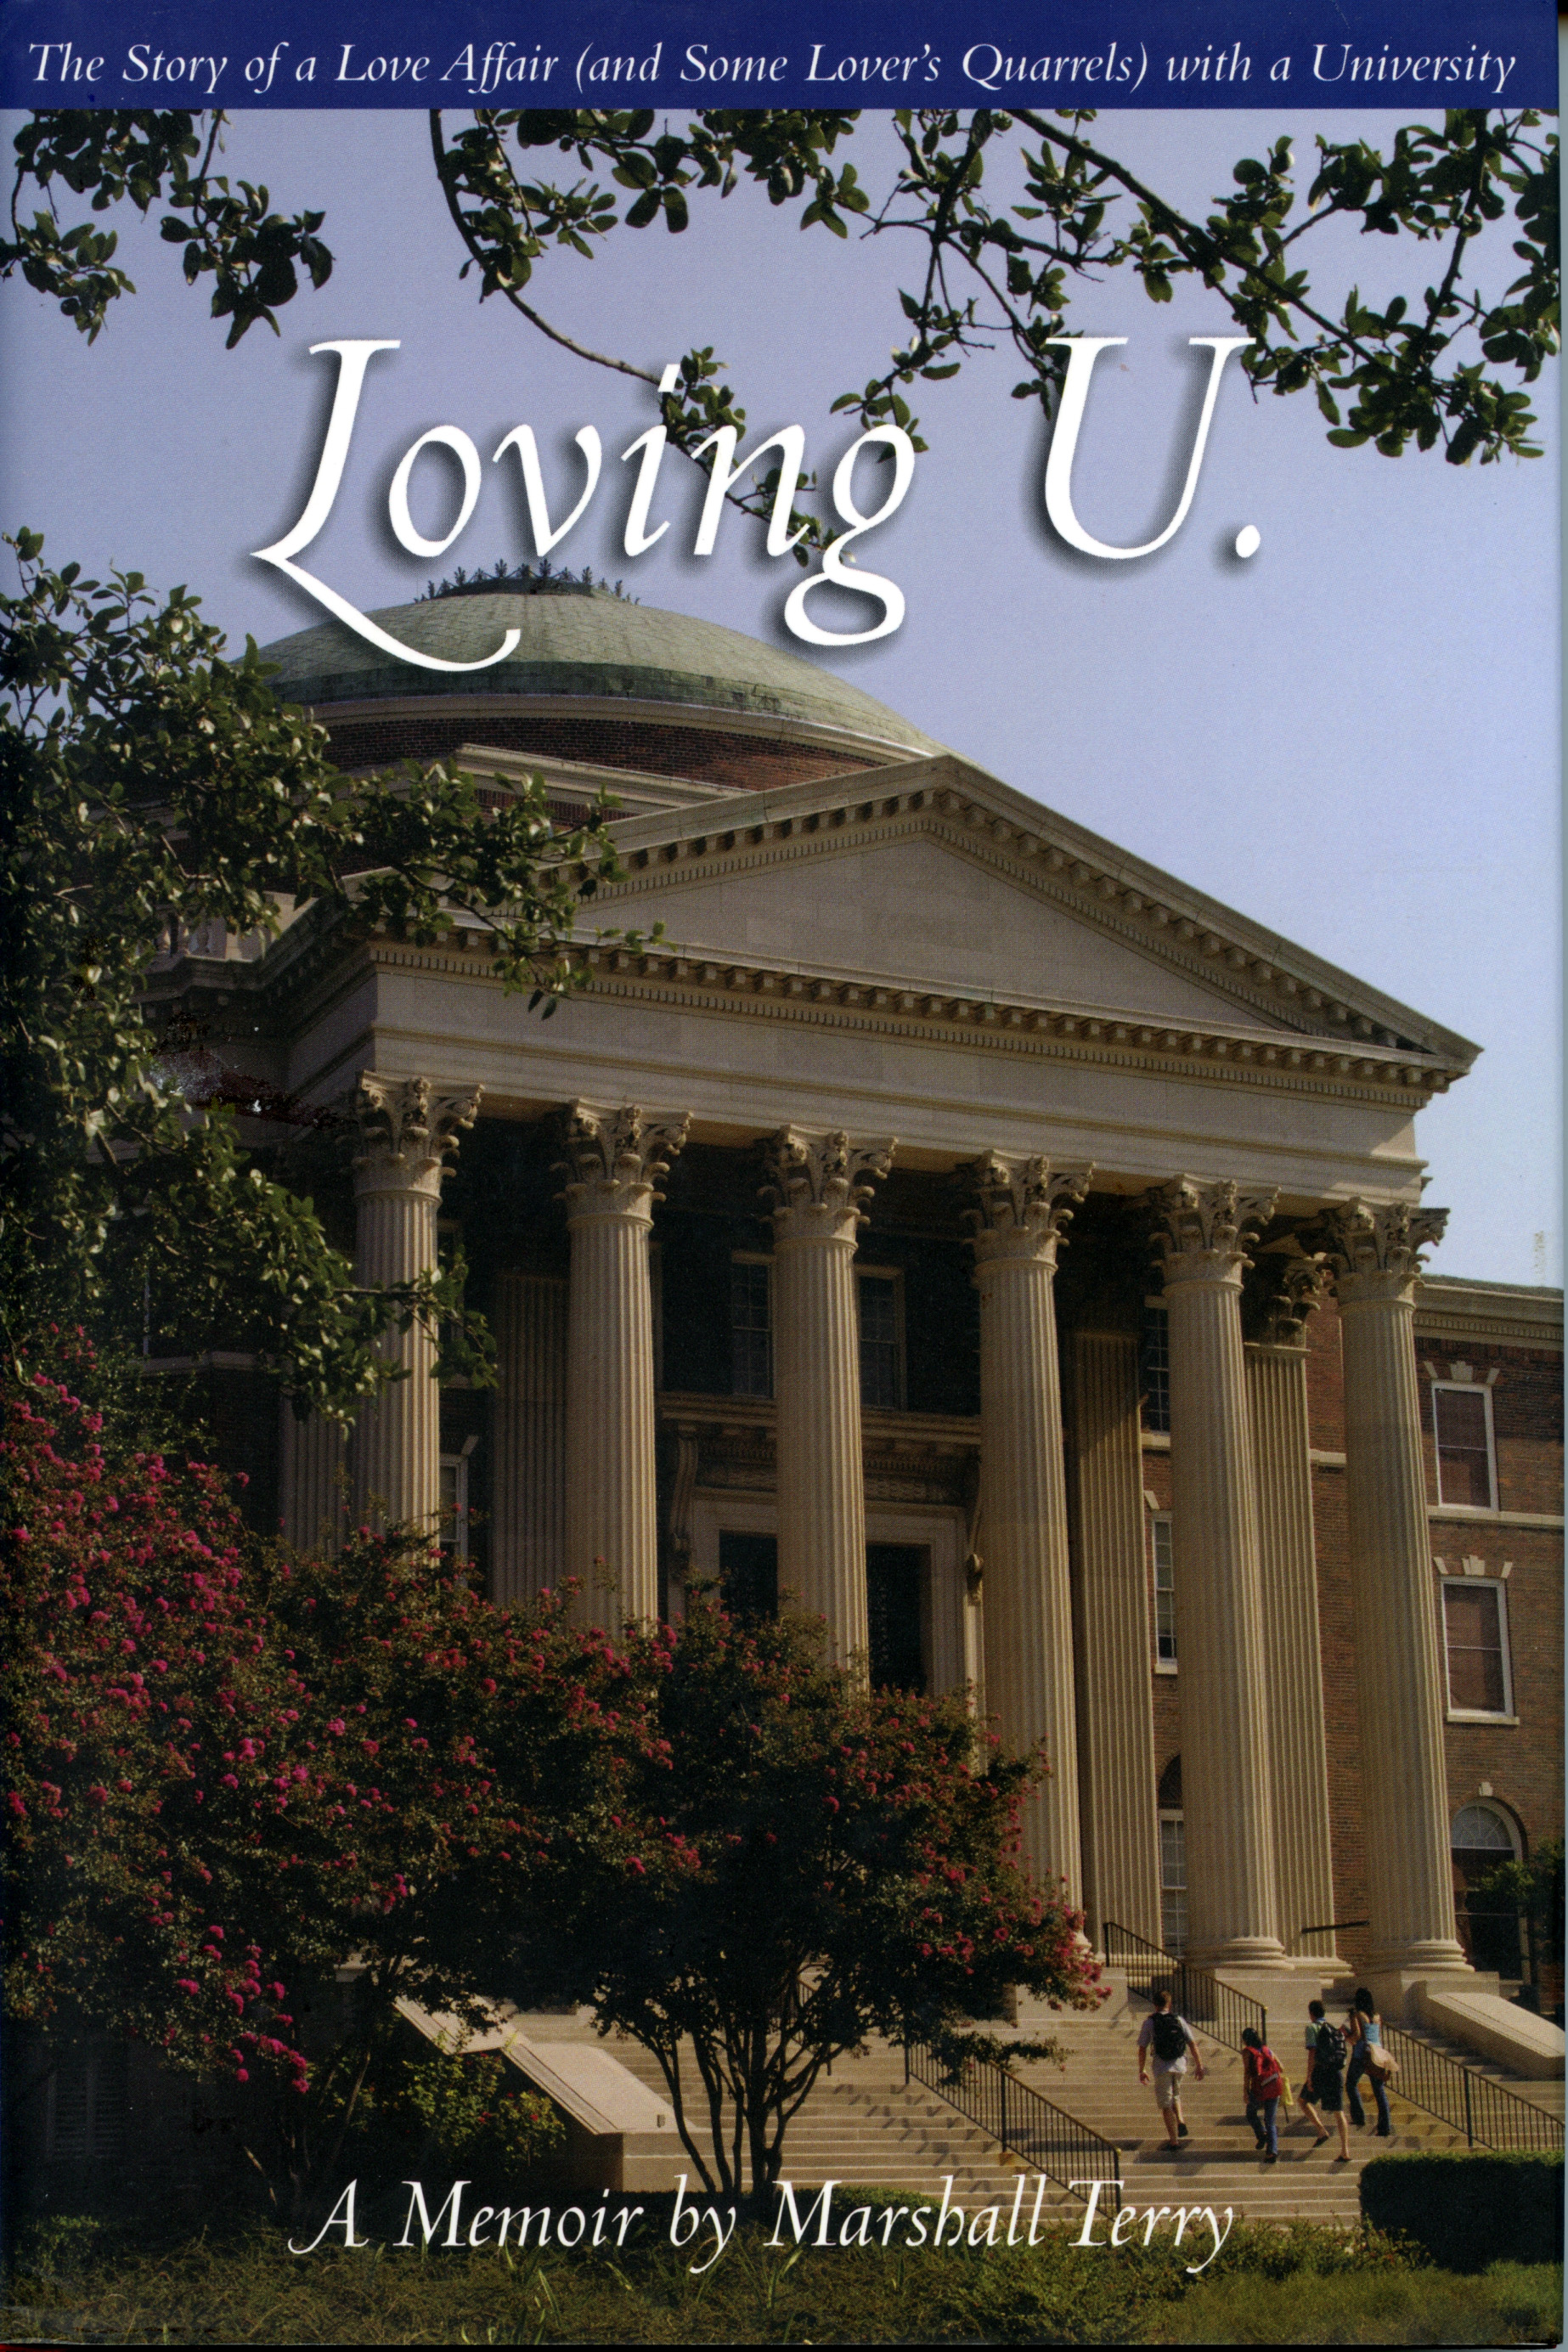 Loving U: The Story of a Love Affair (And Some Lover's Quarrels) With a University by Marshall Terry